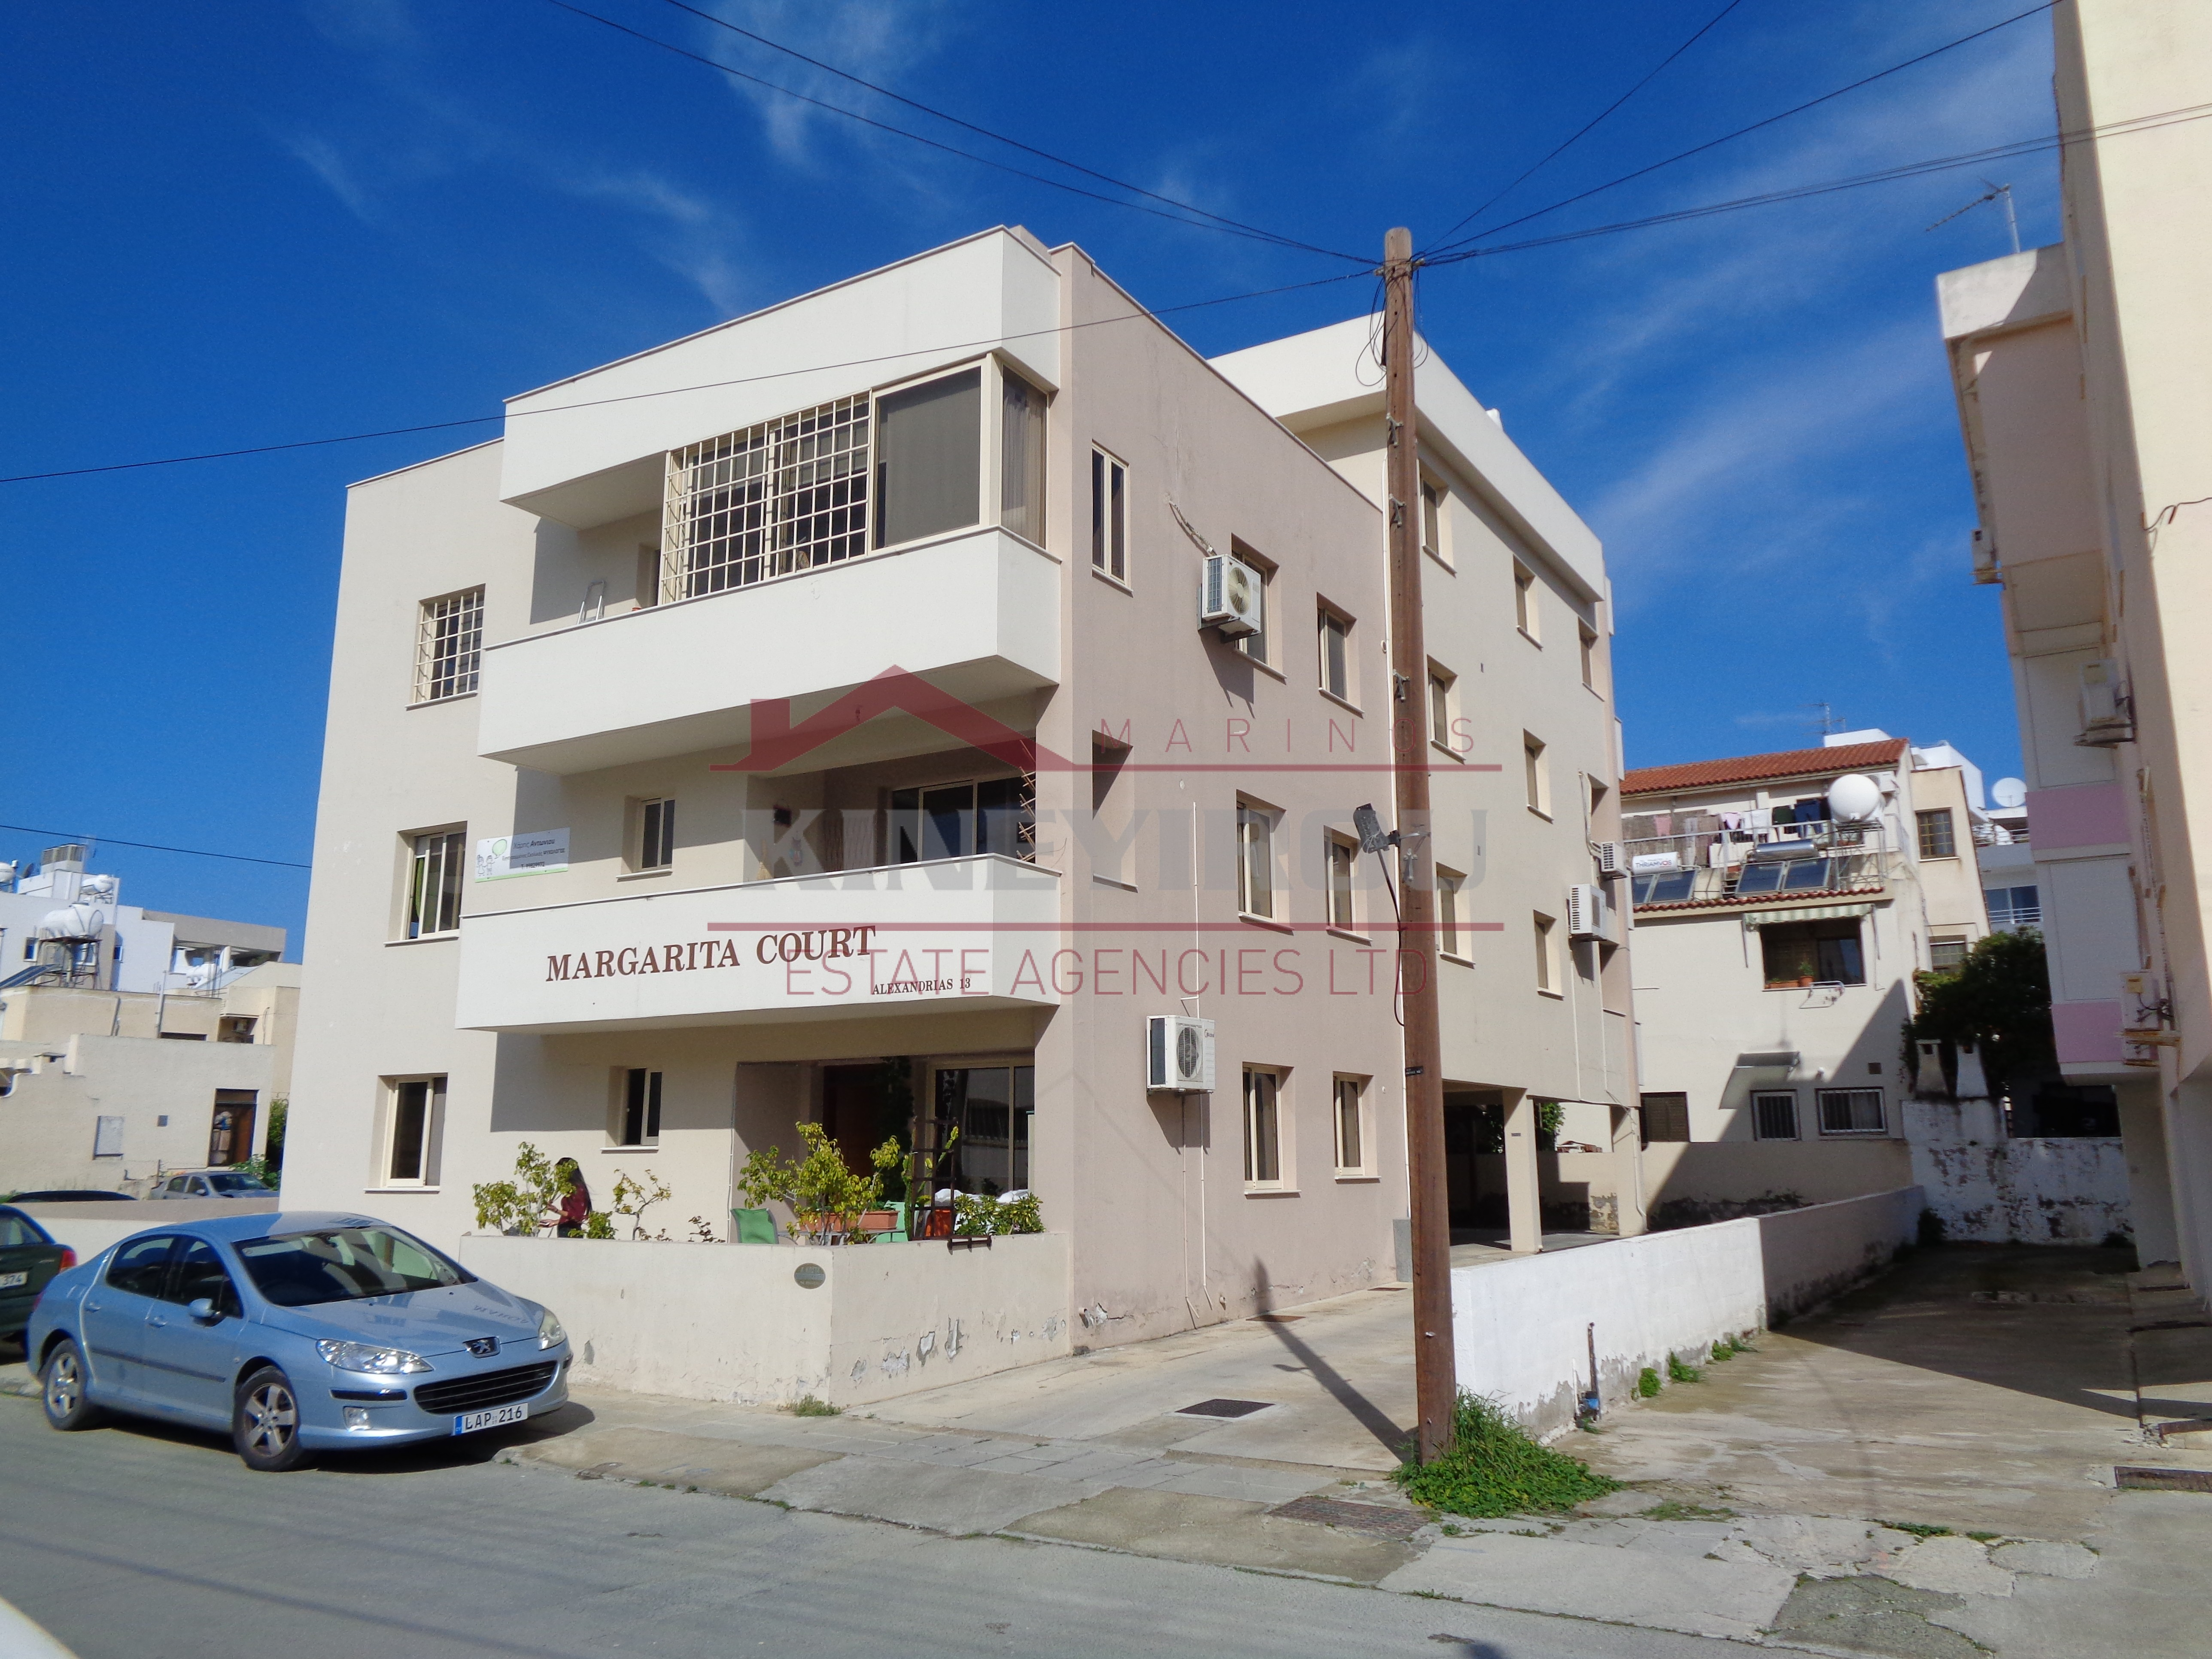 3 Bedrooms Apartment in Larnaca